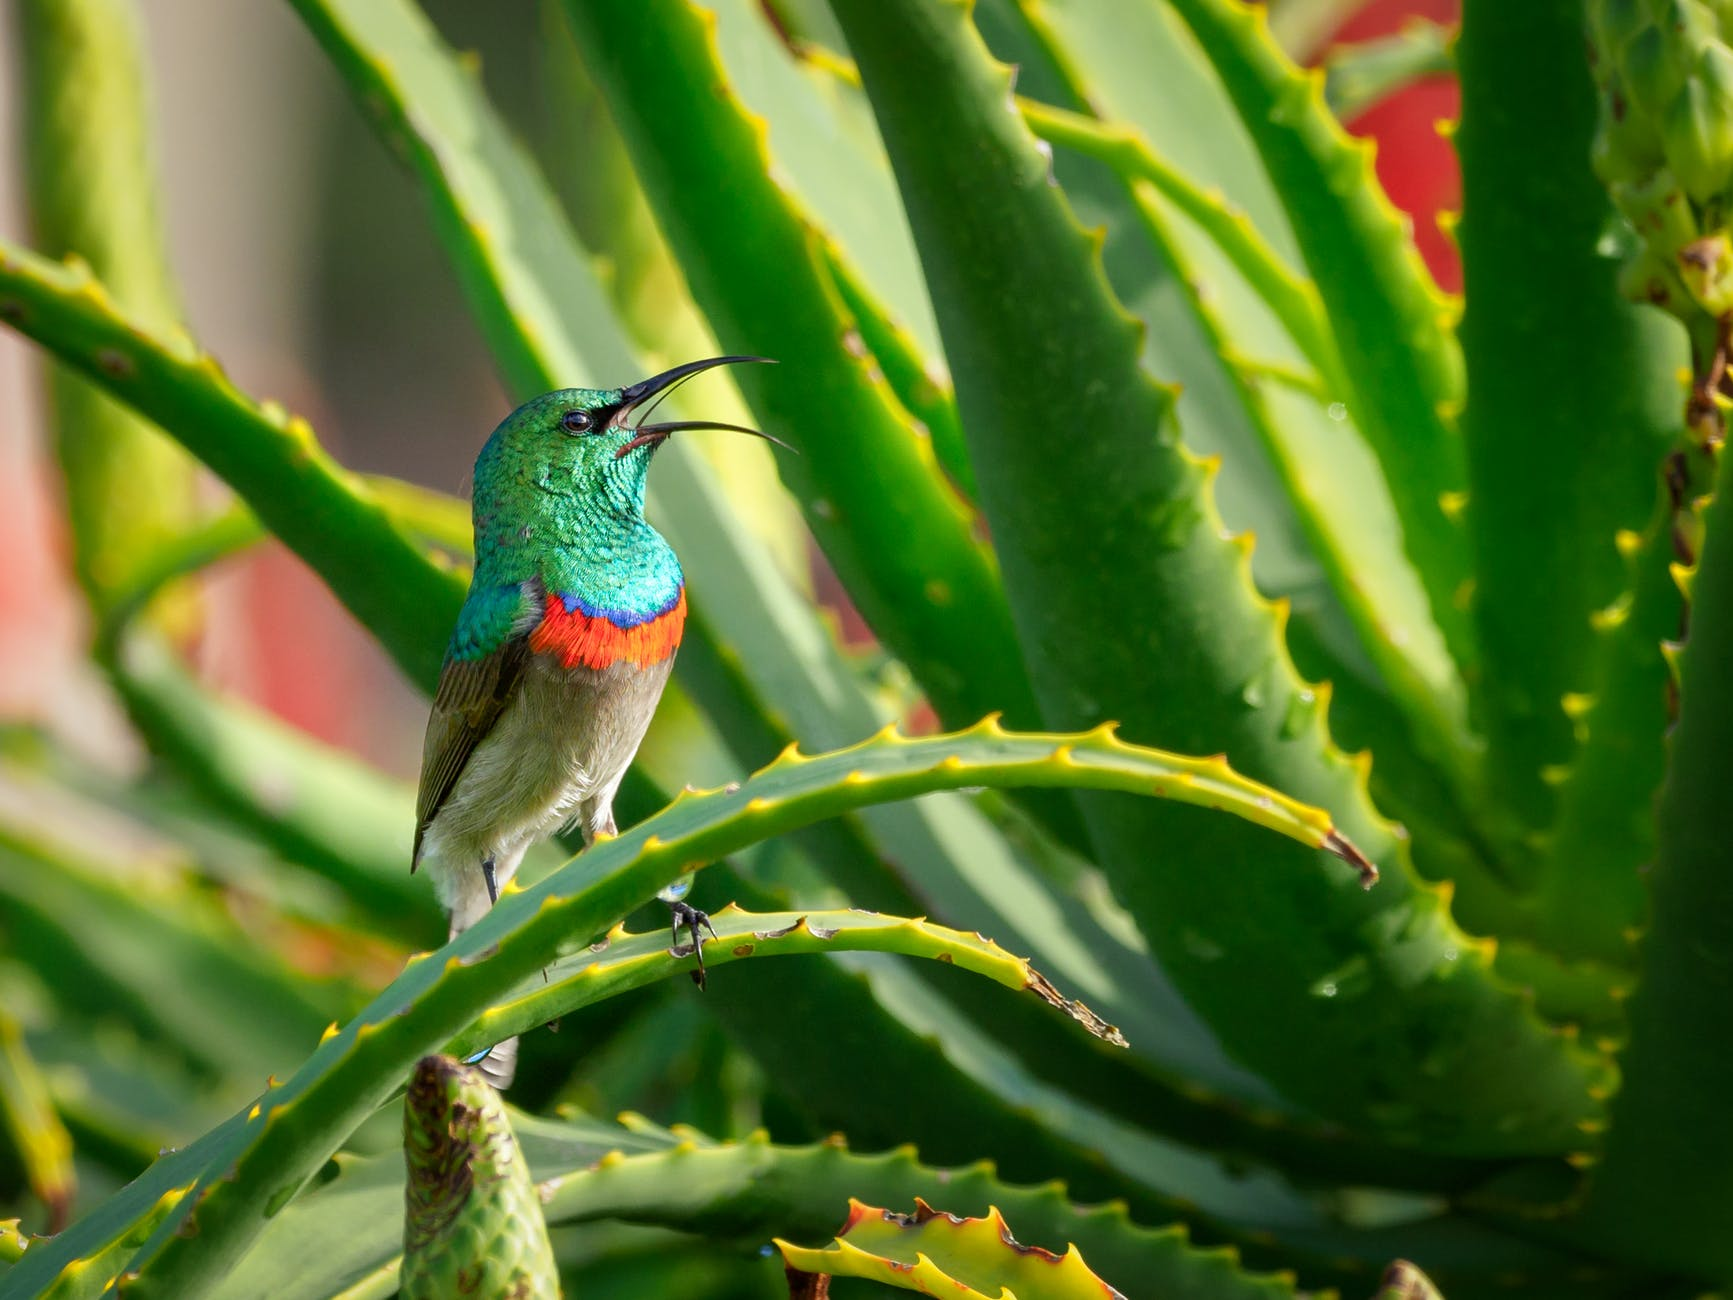 green and gray bird perching on aloe vera plant